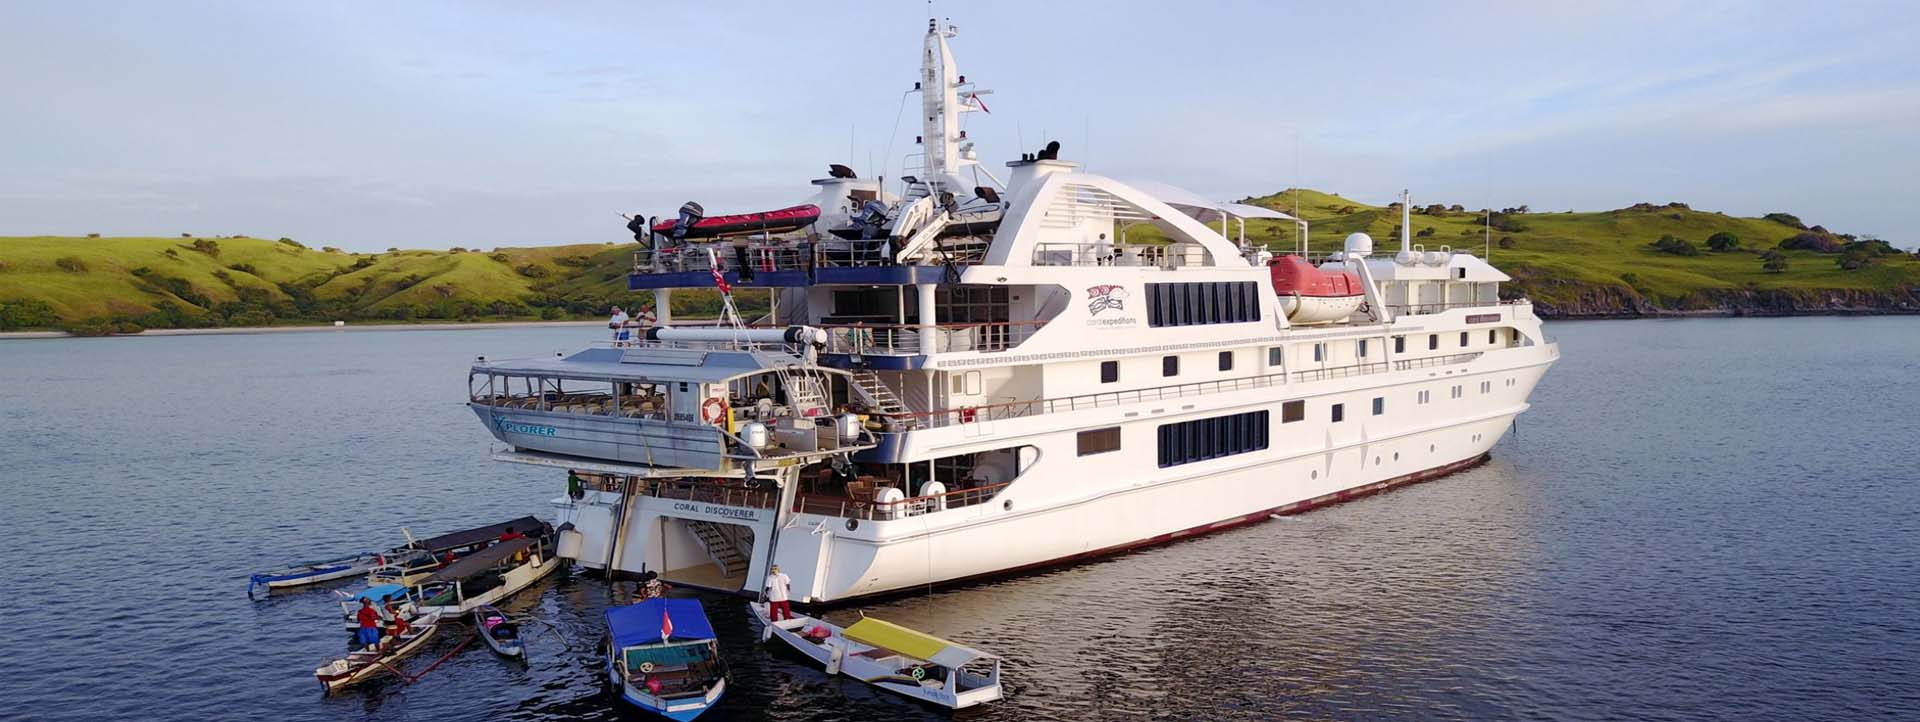 CORAL DISCOVERER bay rear view aerial Kimberley cruises